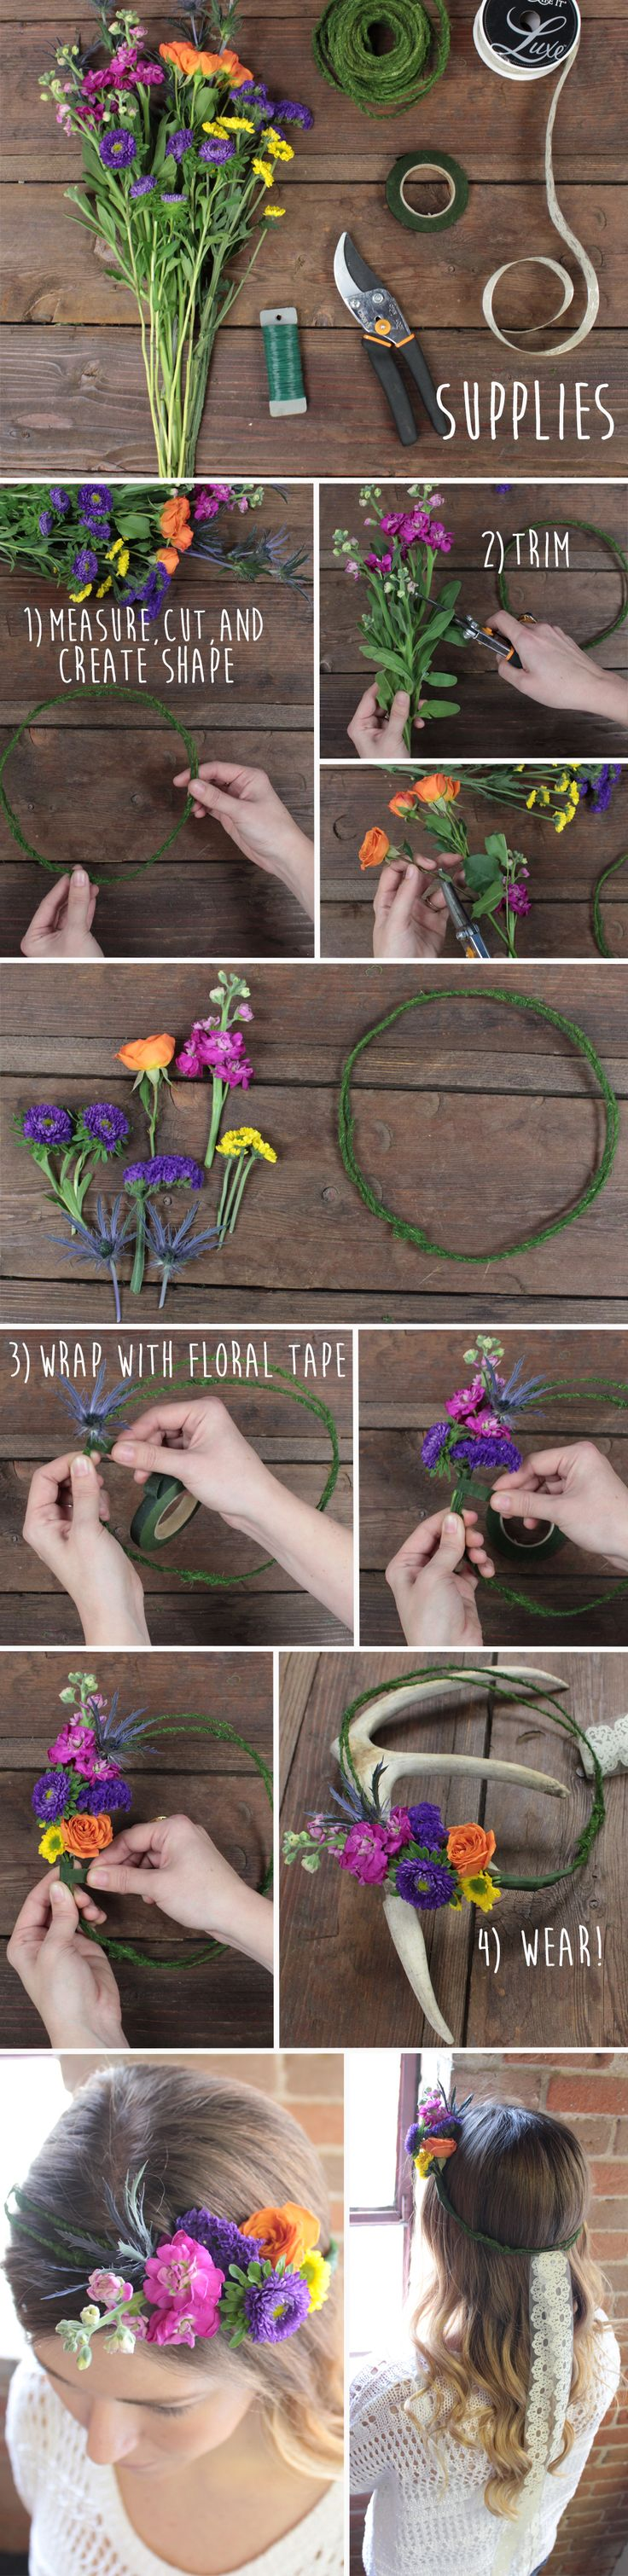 DIYing a flower crown couldn't be easier! Check out the blog post for more info ...